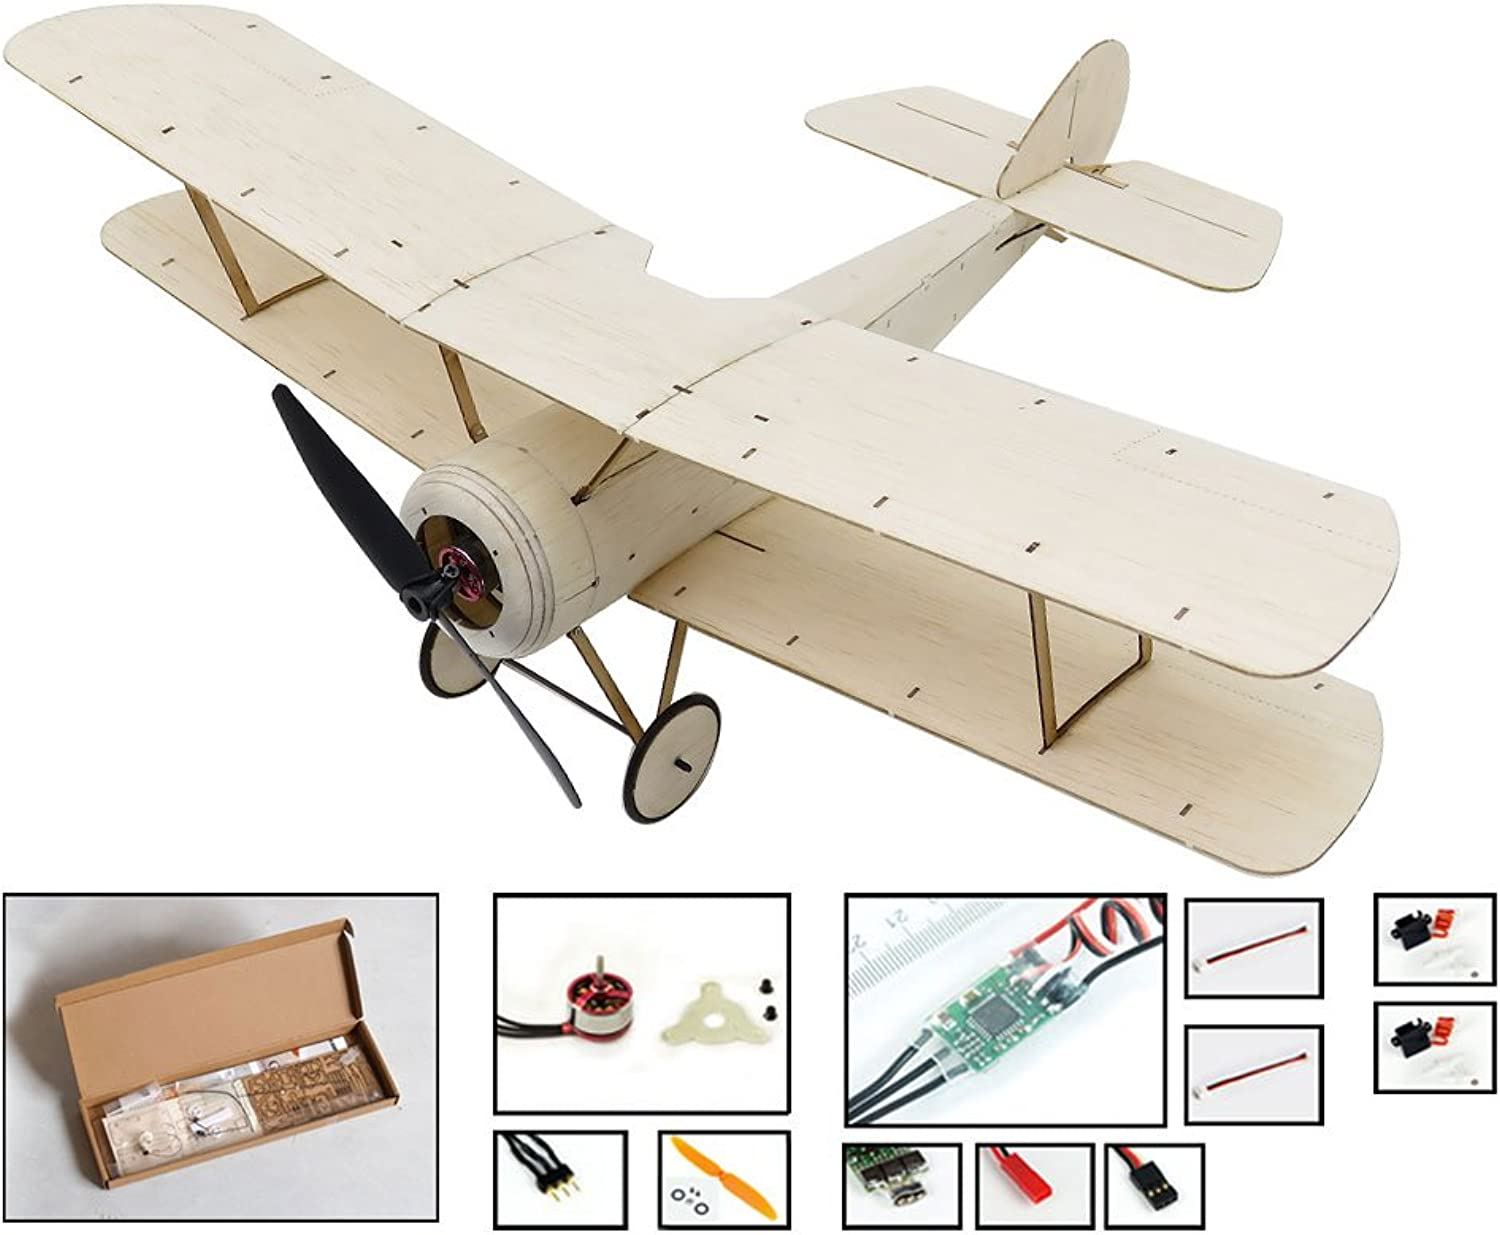 DW Hobby RC Aeroplane Balsawood Plane Sopwith Pup Wingspan 378mm Balsa Wood Model Airplane Building Kit with Power system